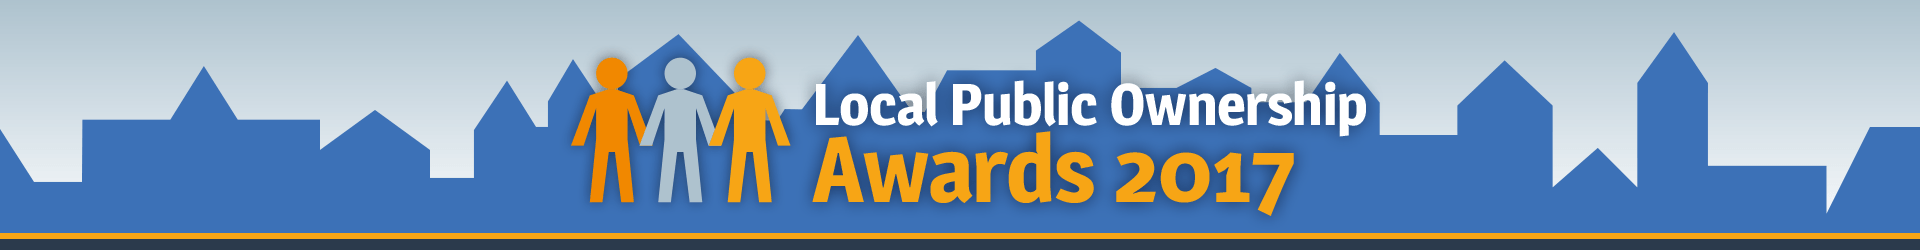 Local Public Ownership Awards 2017